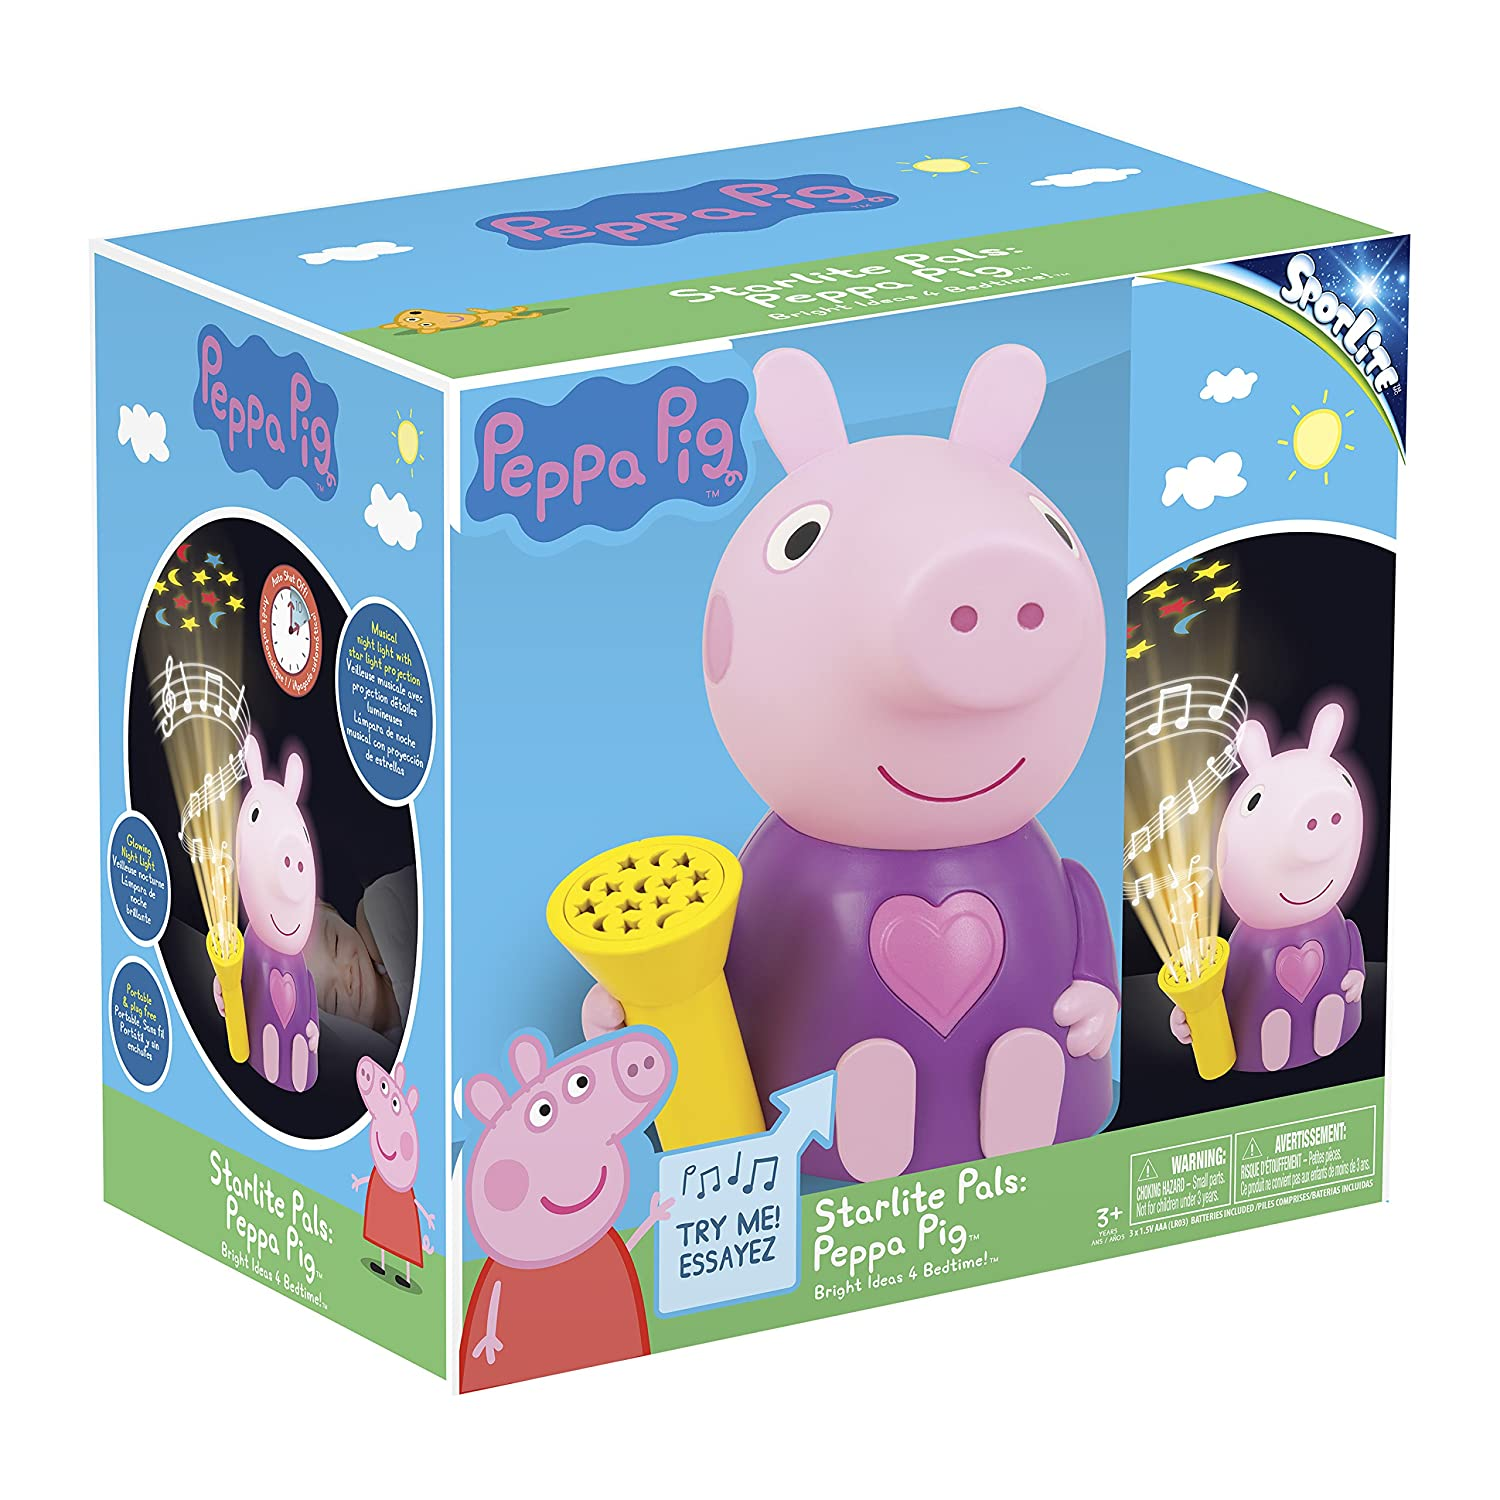 Amazon.com: Peppa Pig Starlite Pal - Luz musical, Peppa Pig ...